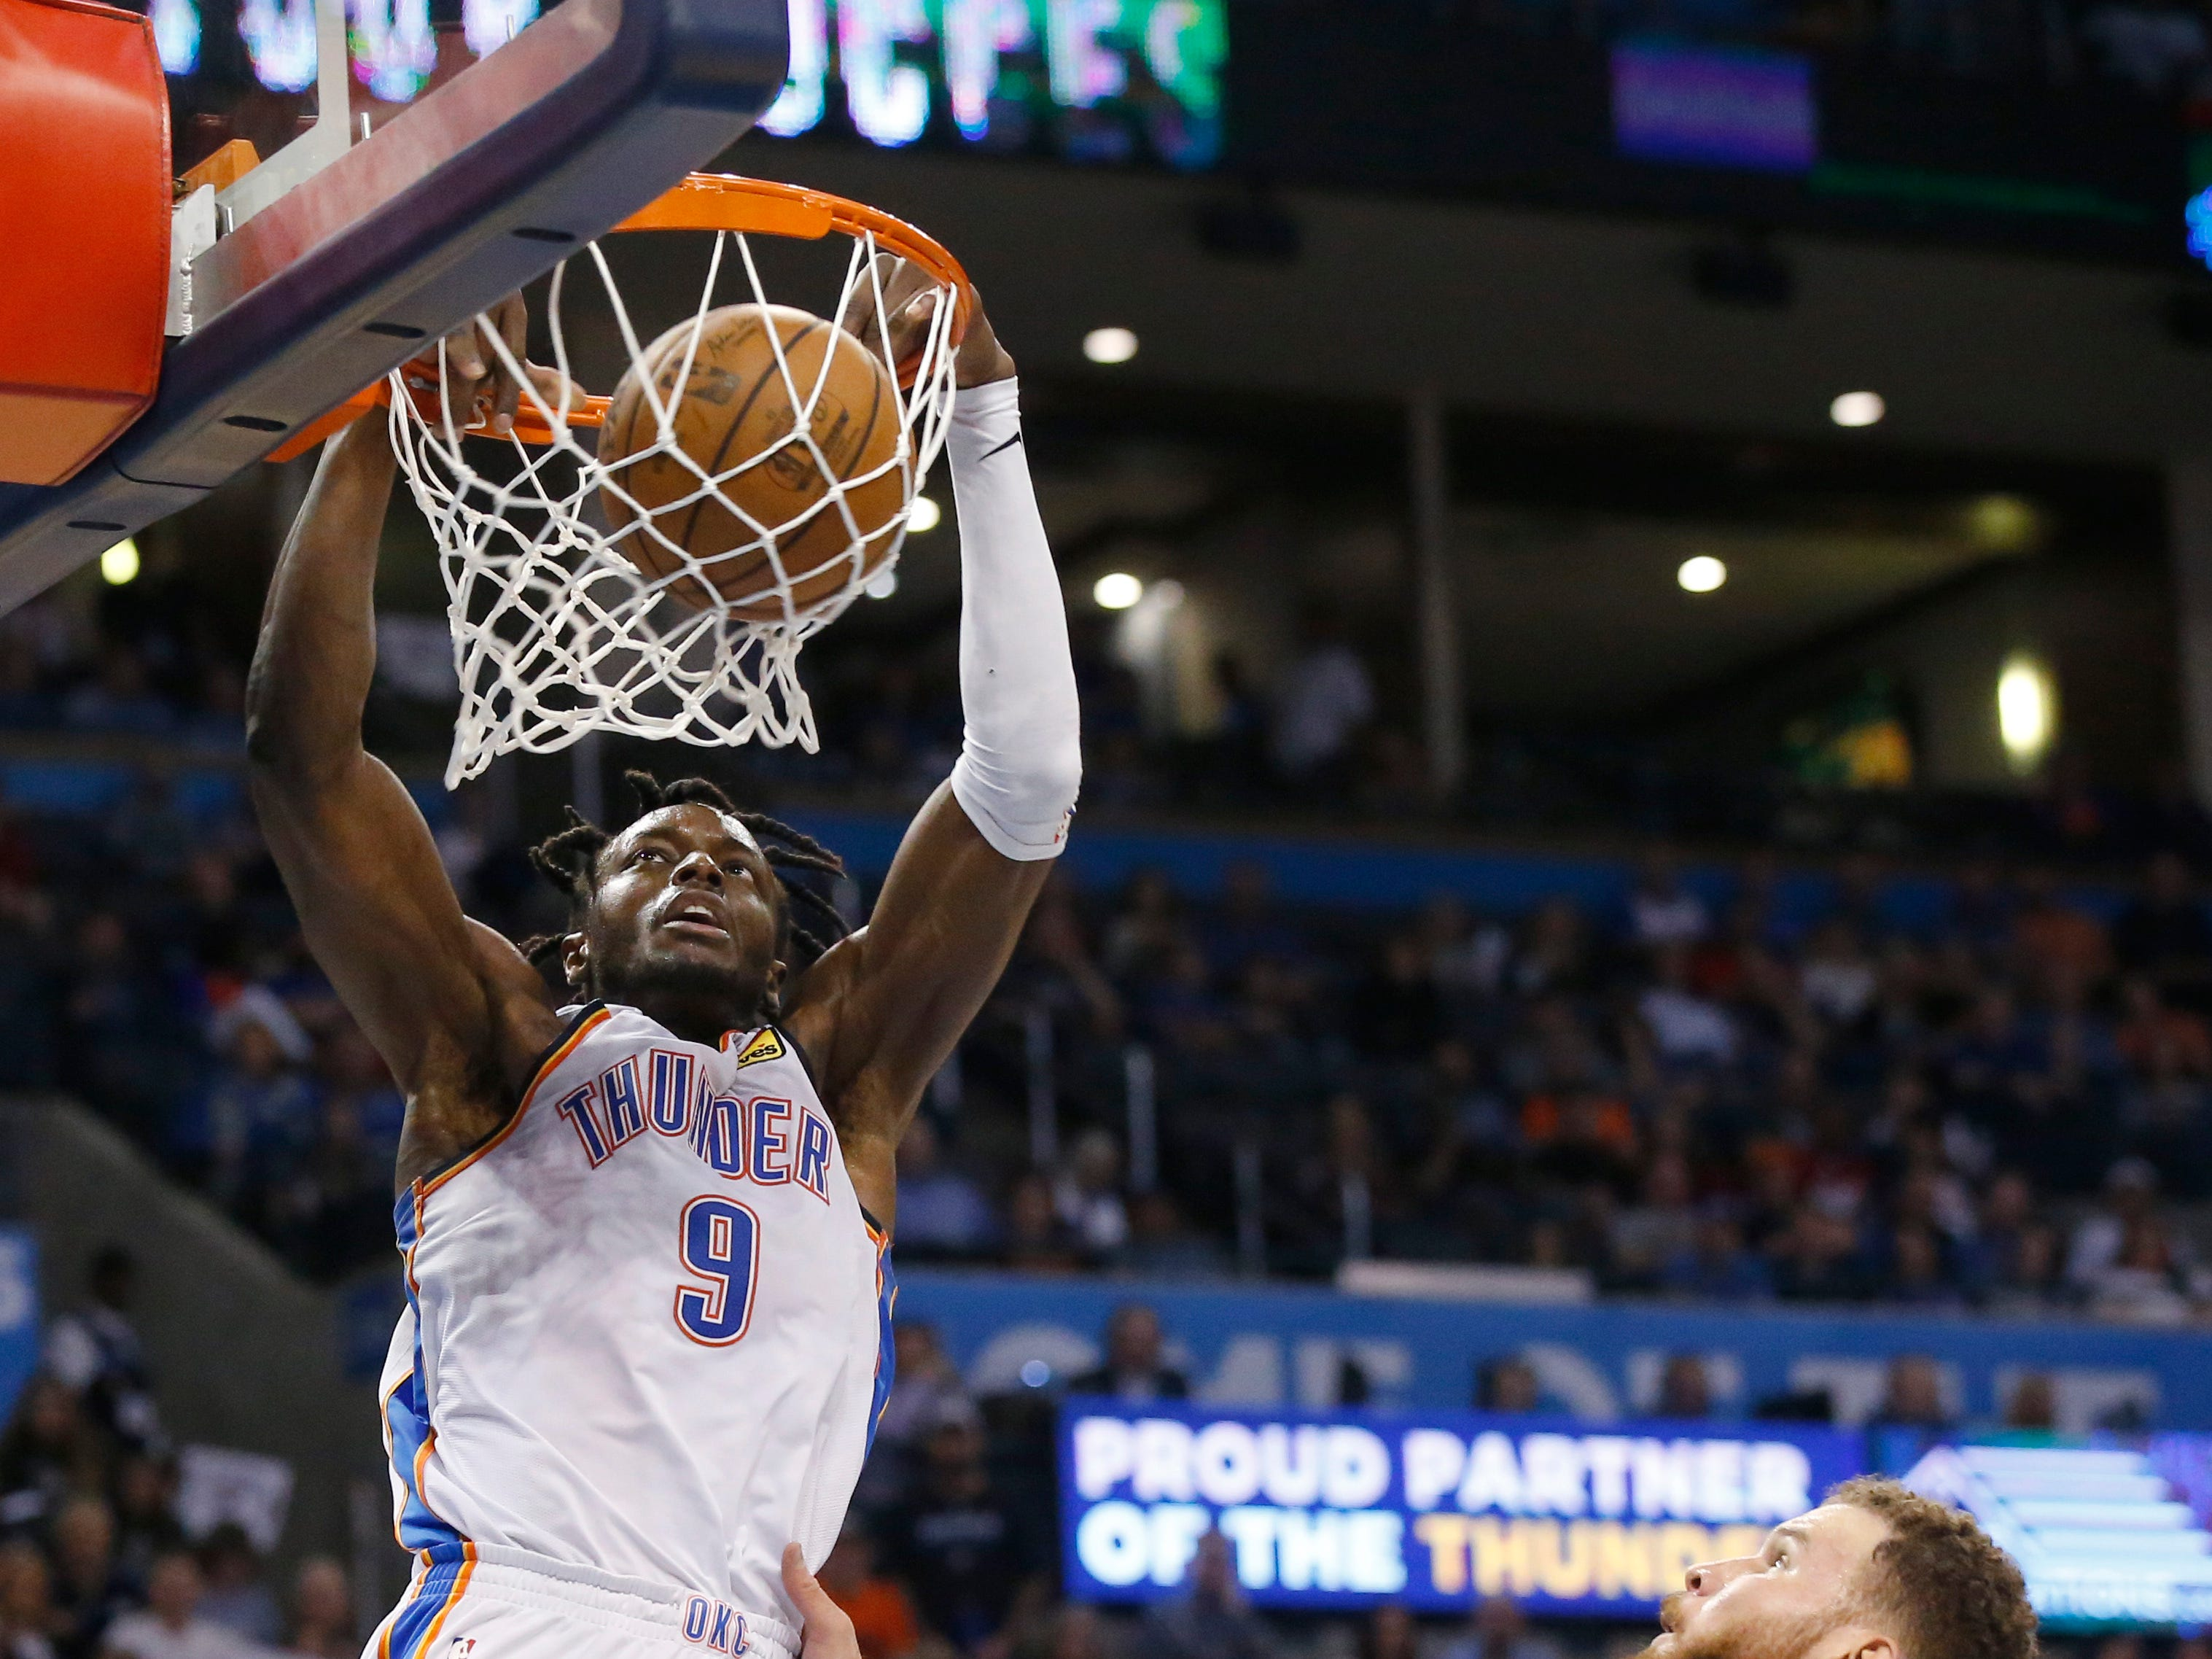 Oklahoma City Thunder forward Jerami Grant (9) dunks in front of Detroit Pistons forward Blake Griffin (23) during the second half of an NBA basketball game Friday, April 5, 2019, in Oklahoma City.  The Thunder defeated the Pistons 123-110.